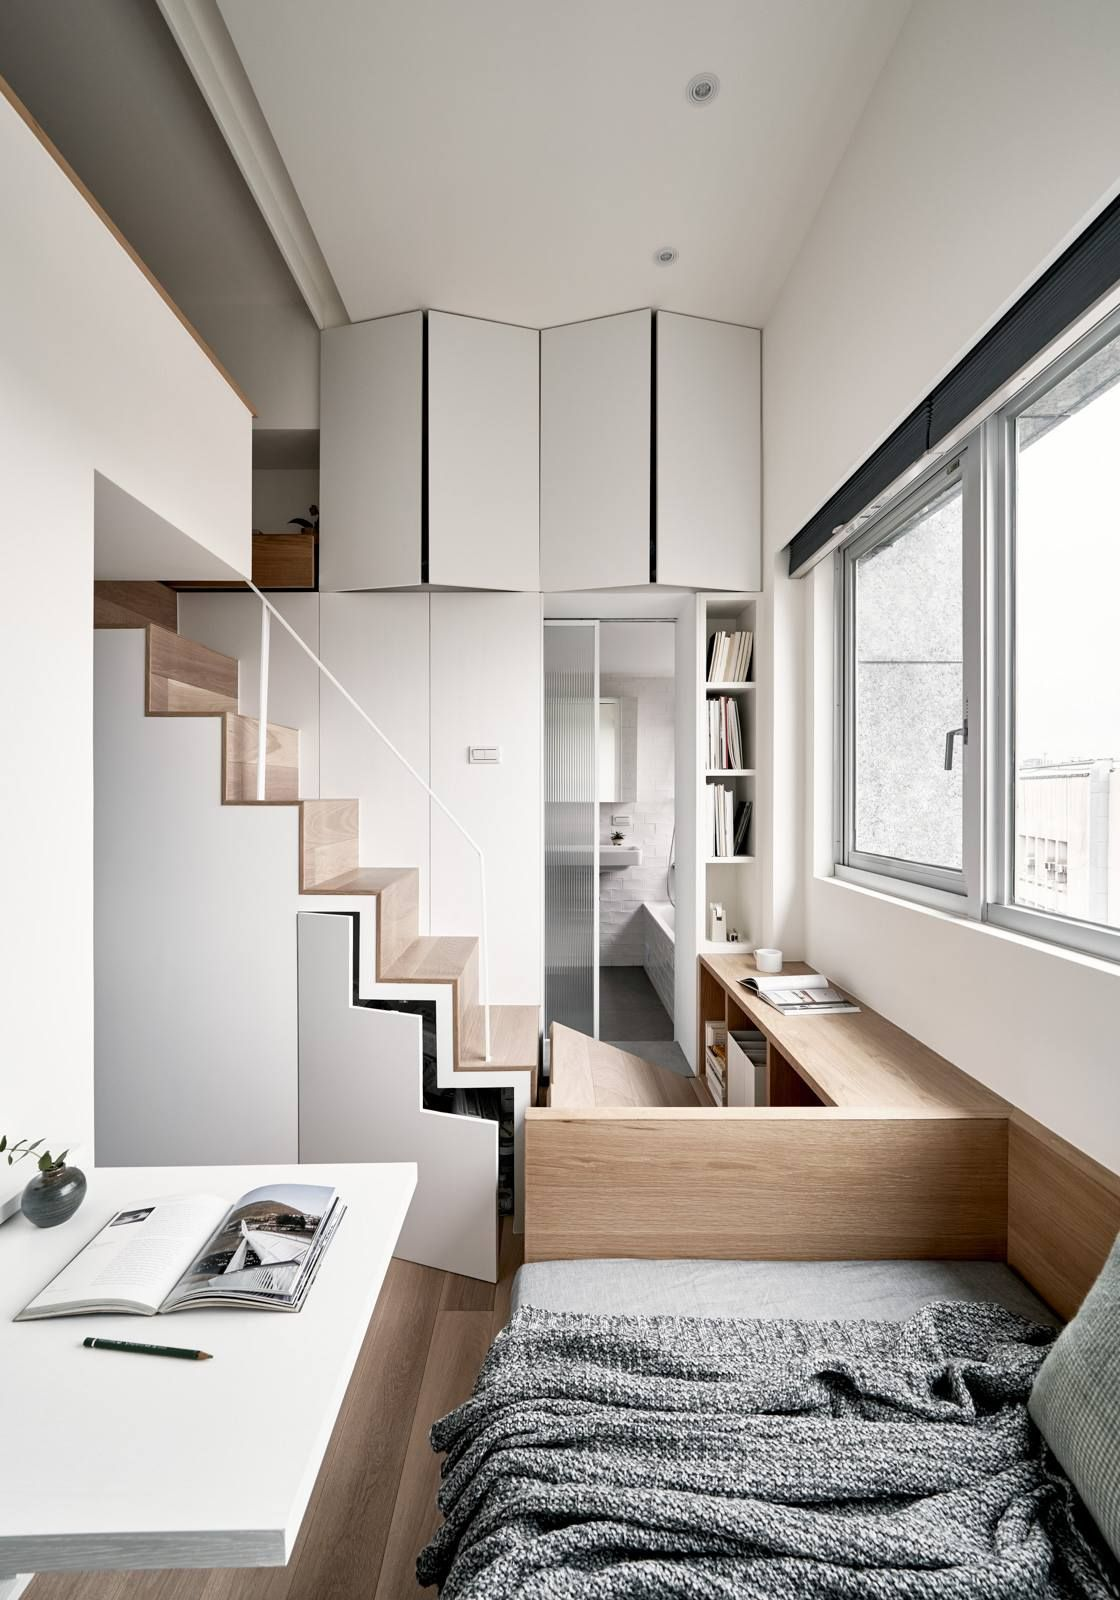 Piano Studio Changes Its Tune To A 17 6 Sqm Micro Flat In Taiwan